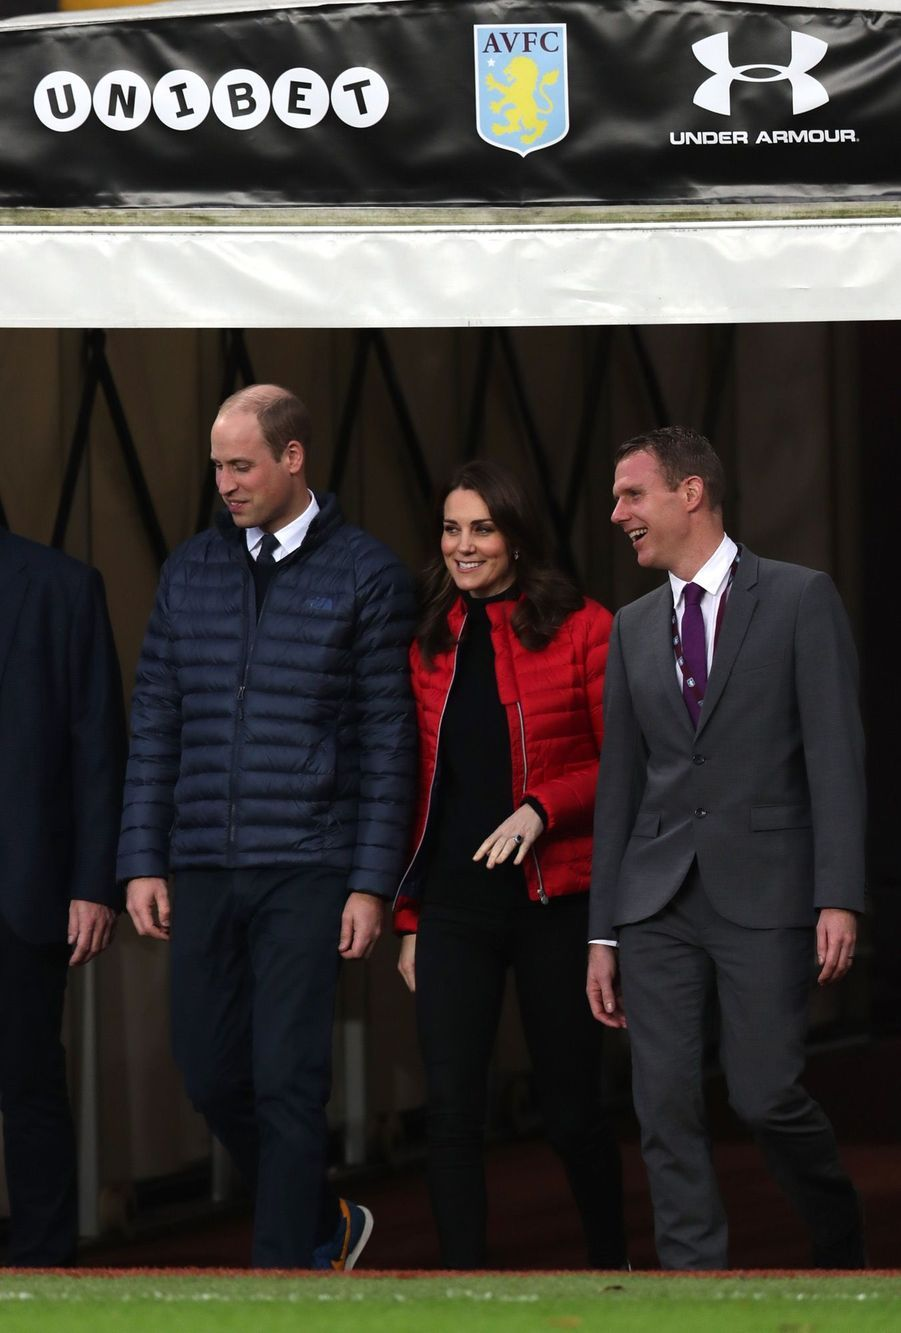 Kate Middleton Et Le Prince William Au Stade Du Club D'Aston Villa 14